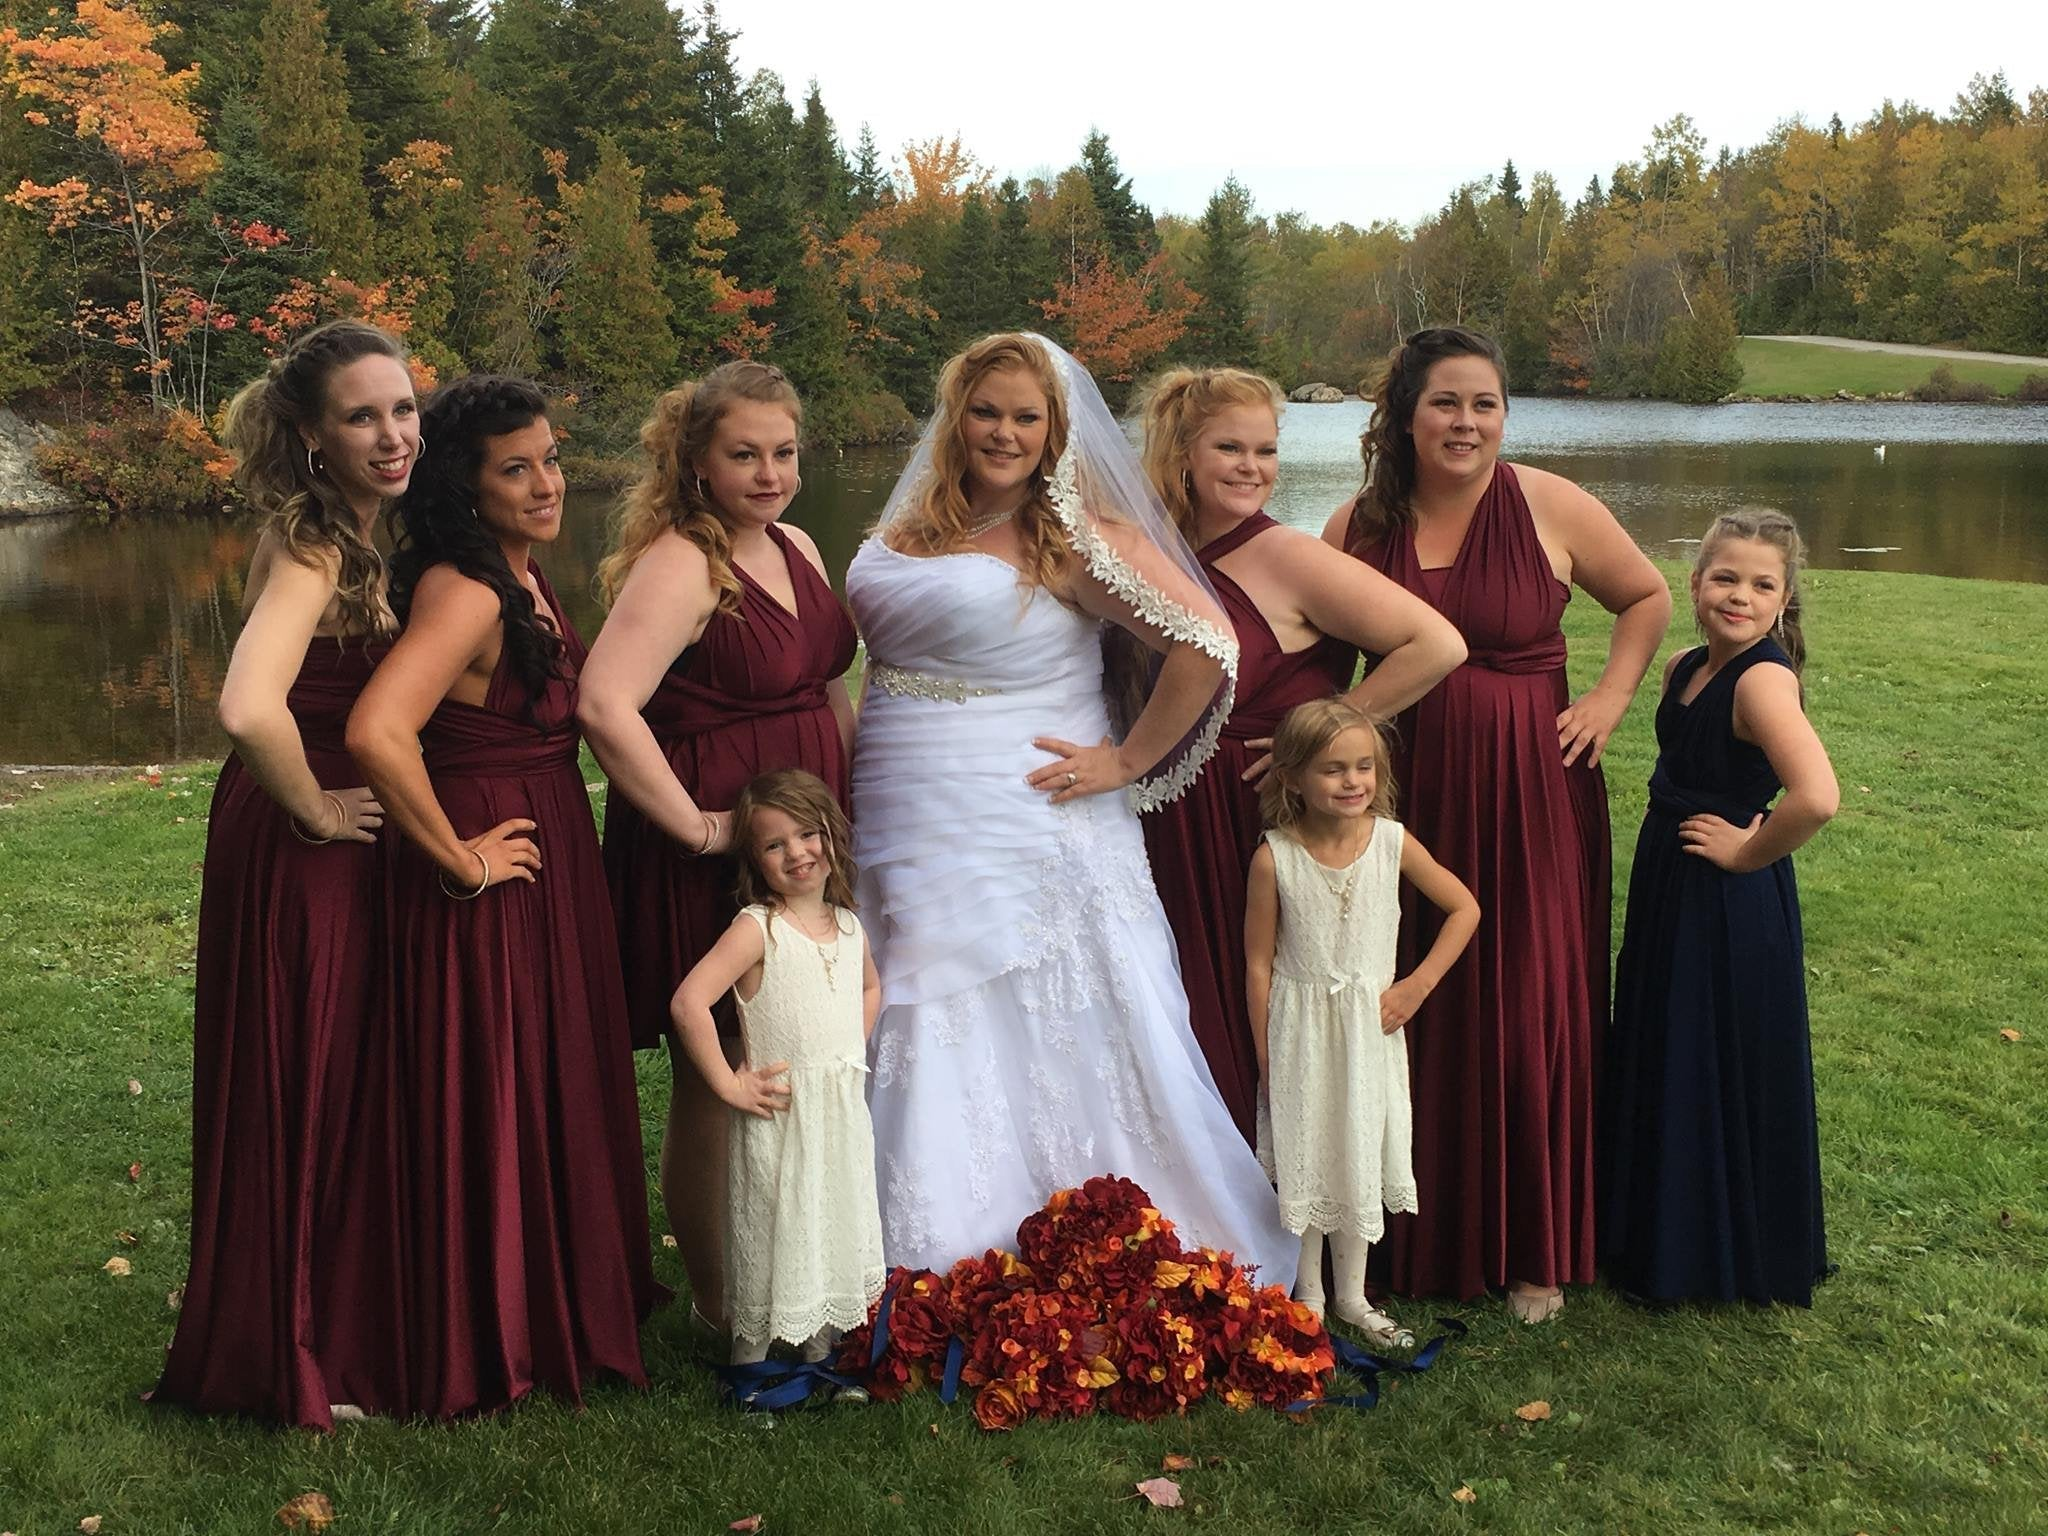 Wine Convertible Dress/Custom size, length/Maternity & Plus Size included